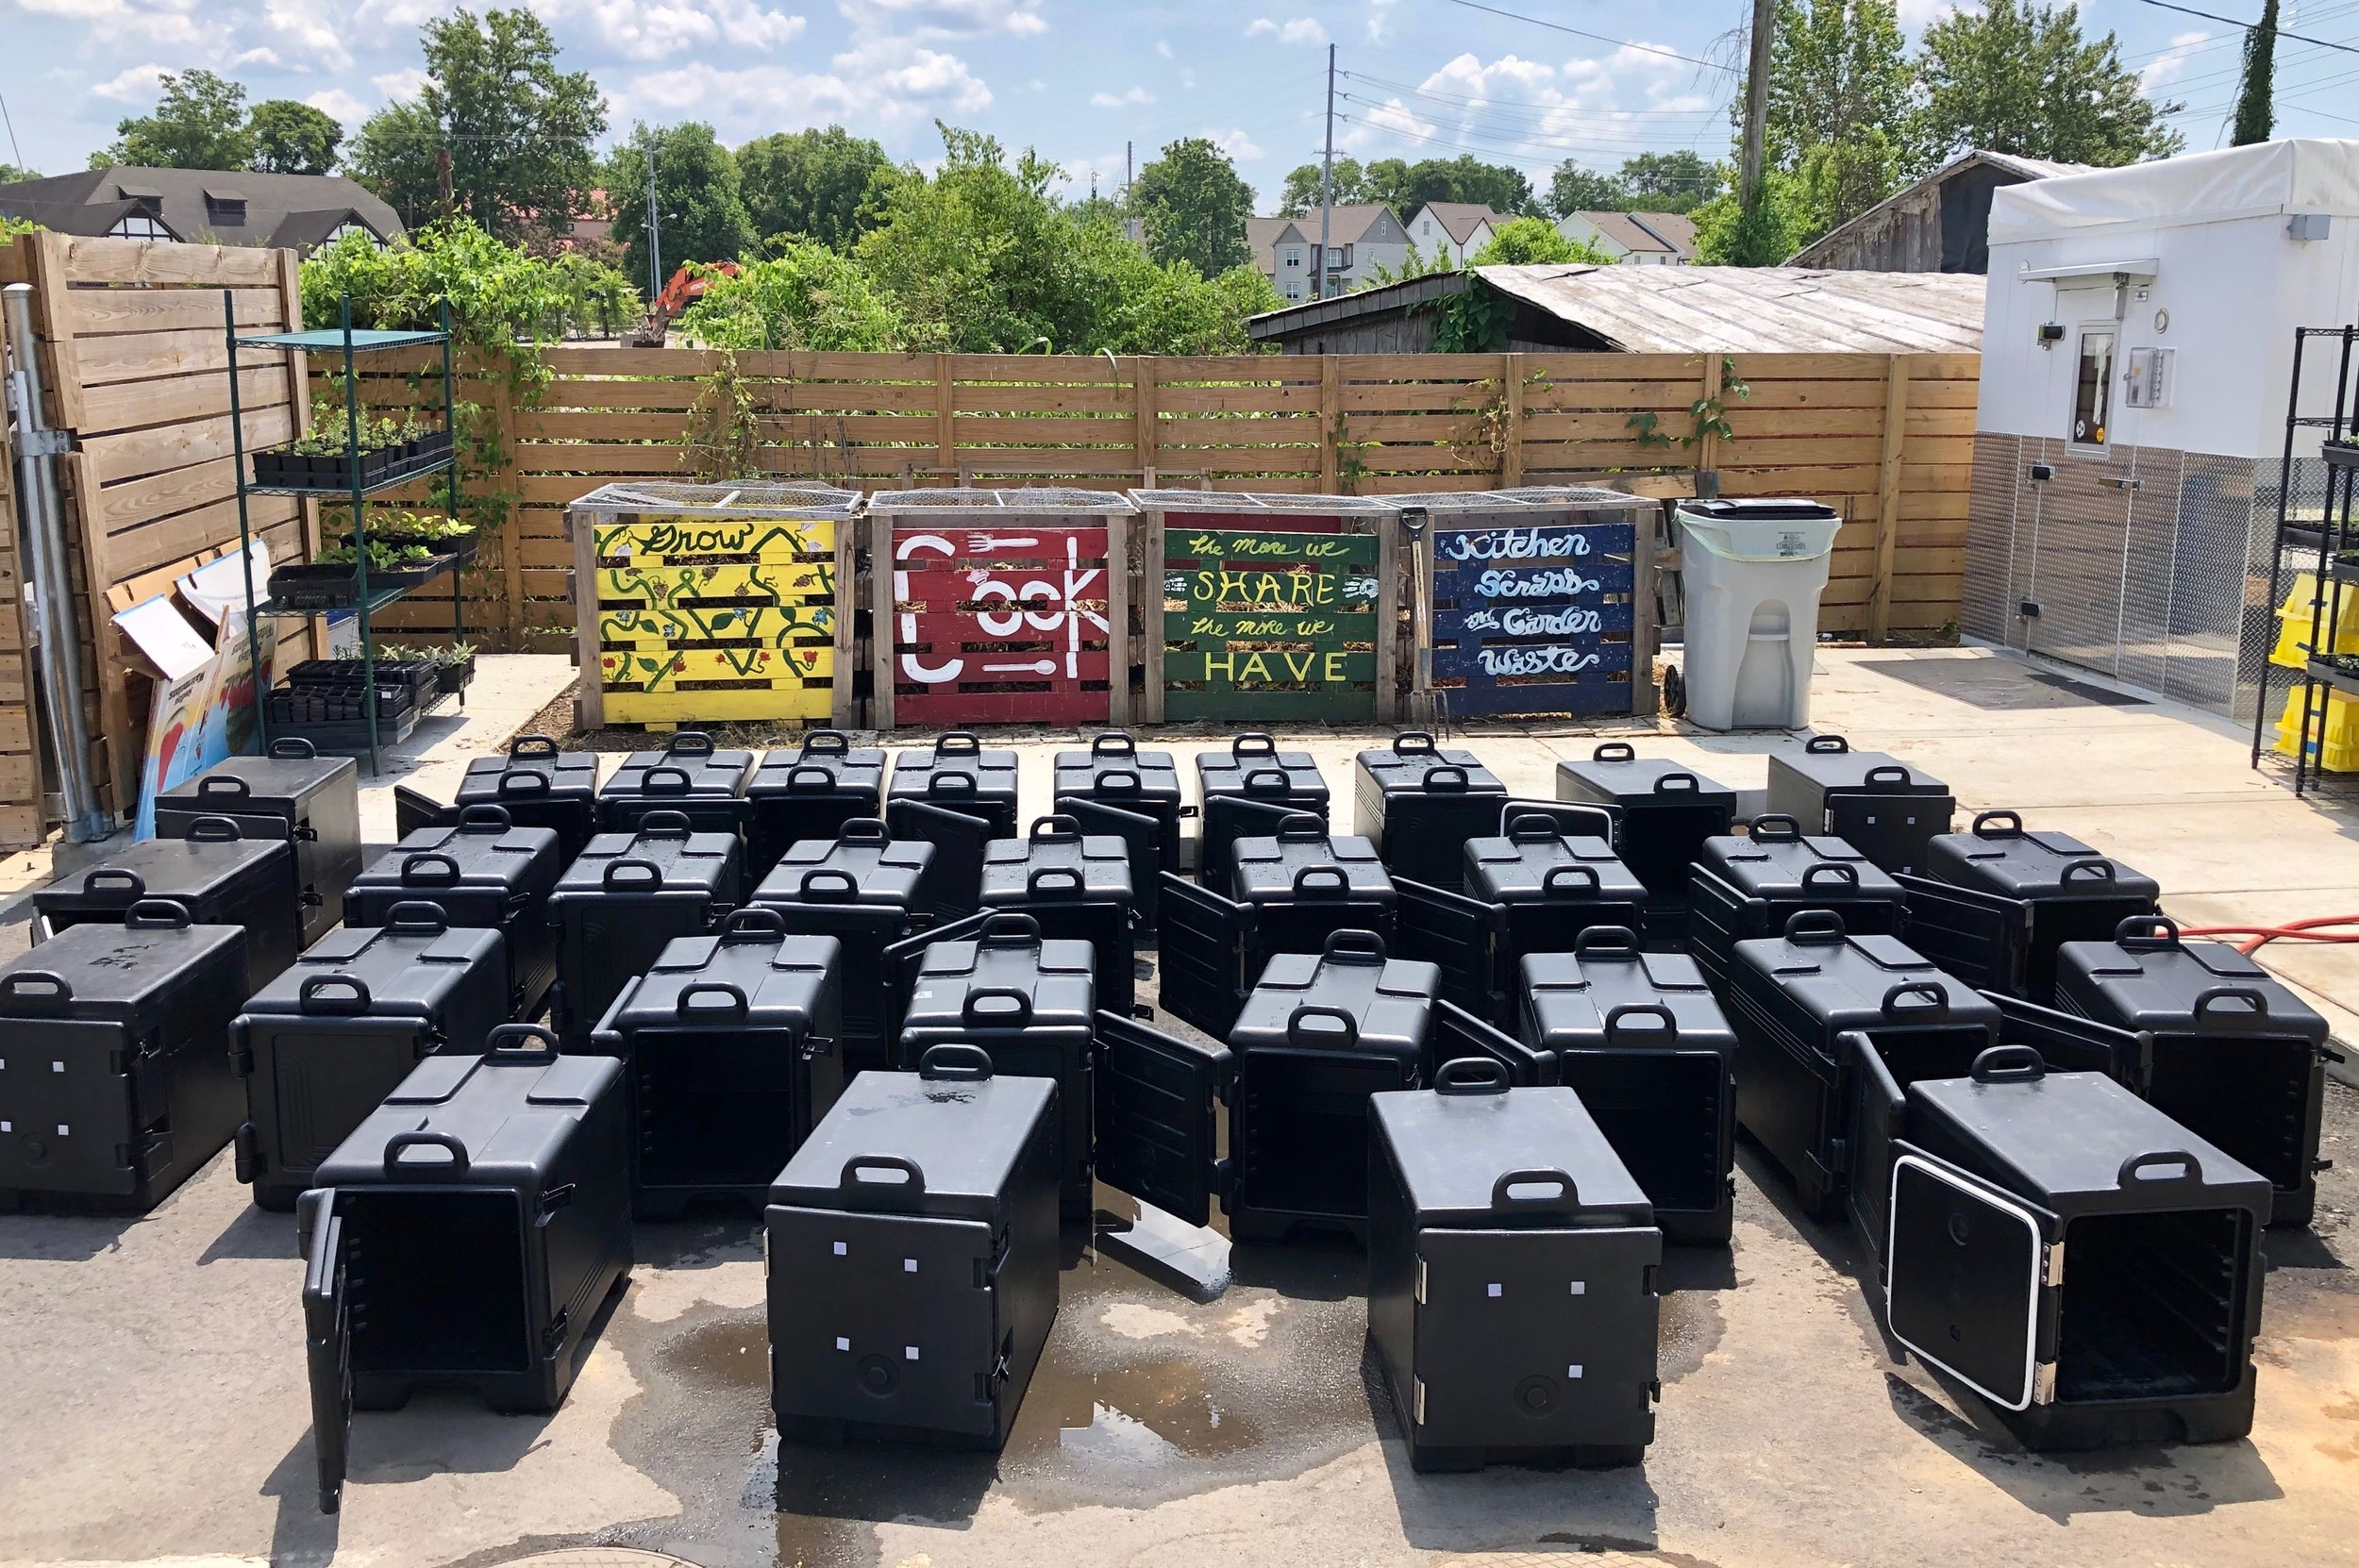 Insulated food carriers used to deliver meals. All of these (plus more!) were cram-packed with freshly made, nutritious meals cooked in our two kitchens by TNFP staff, interns and volunteers.